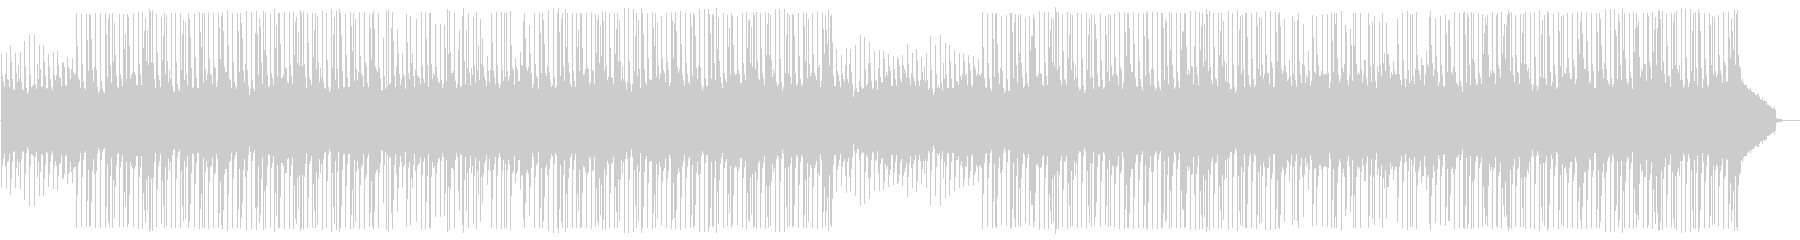 [Without percussion] Agriculture, fields, and heartwarming BGM's unreproduced waveform